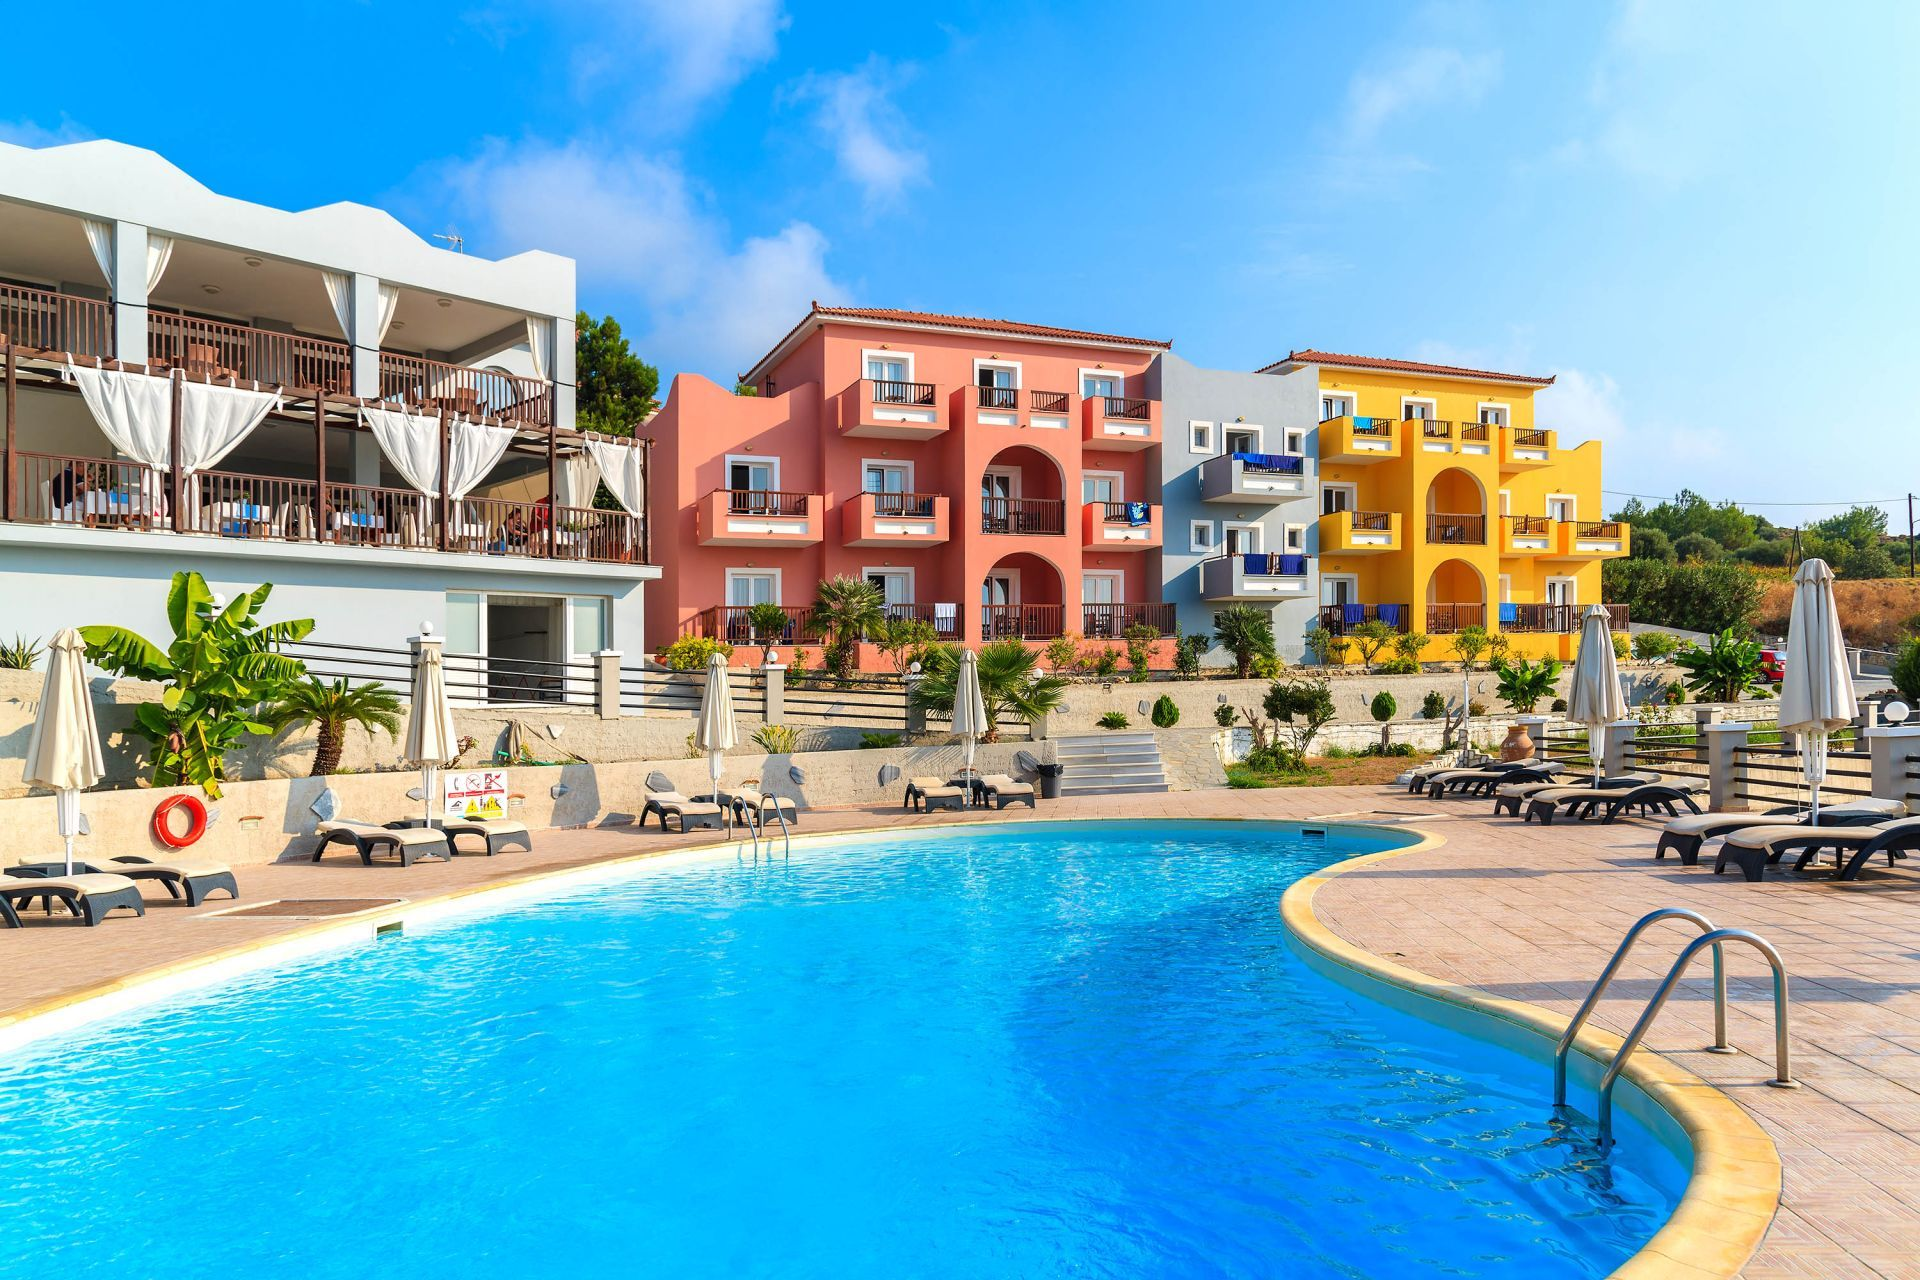 Accommodation and hotels in Samos